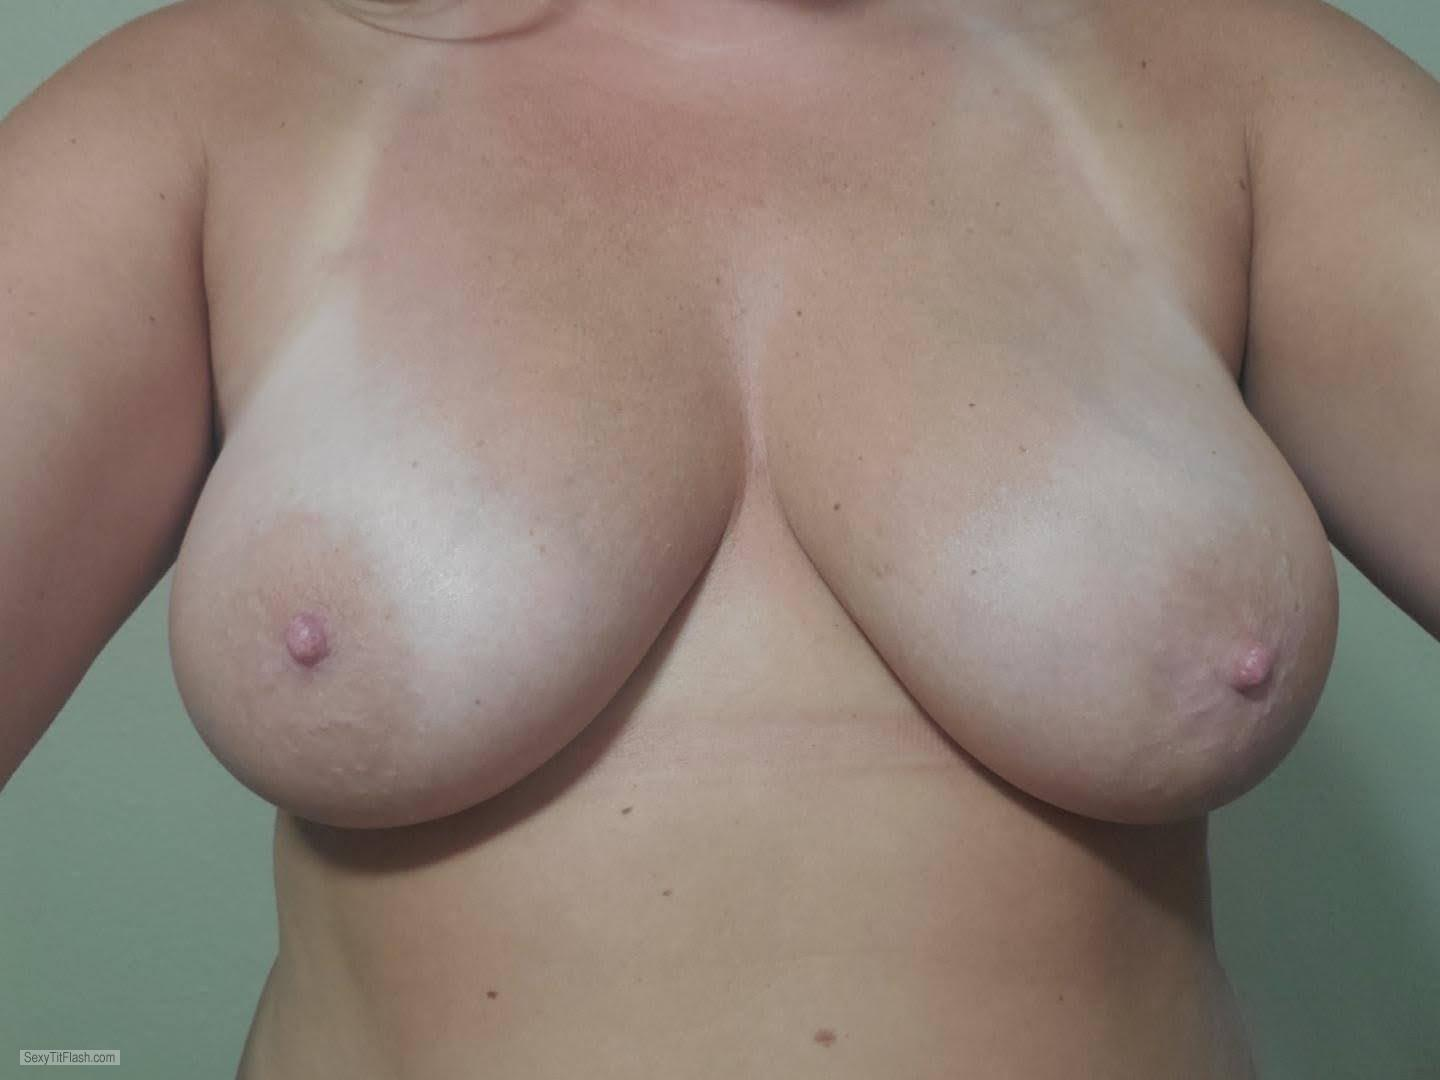 Tit Flash: My Very Small Tits With Strong Tanlines (Selfie) - Lesslie from United States